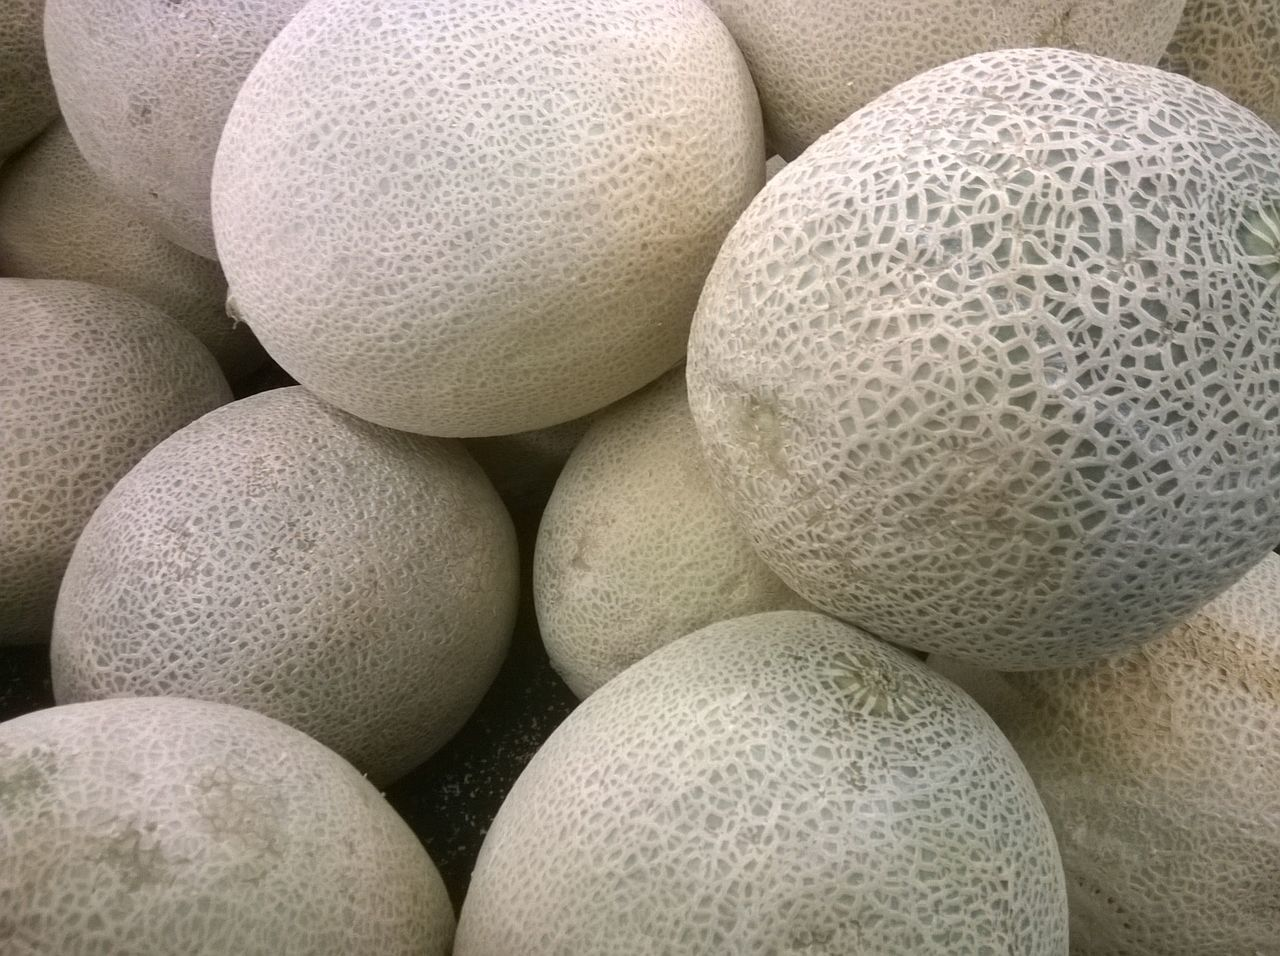 A bunch of cantaloupes. Cantaloupe Fruit No People Round Market Grocery Shopping Food Foodphotography Food Shopping Getty X EyeEm Getty Images Hungry Hunger Healthy Food Healthy